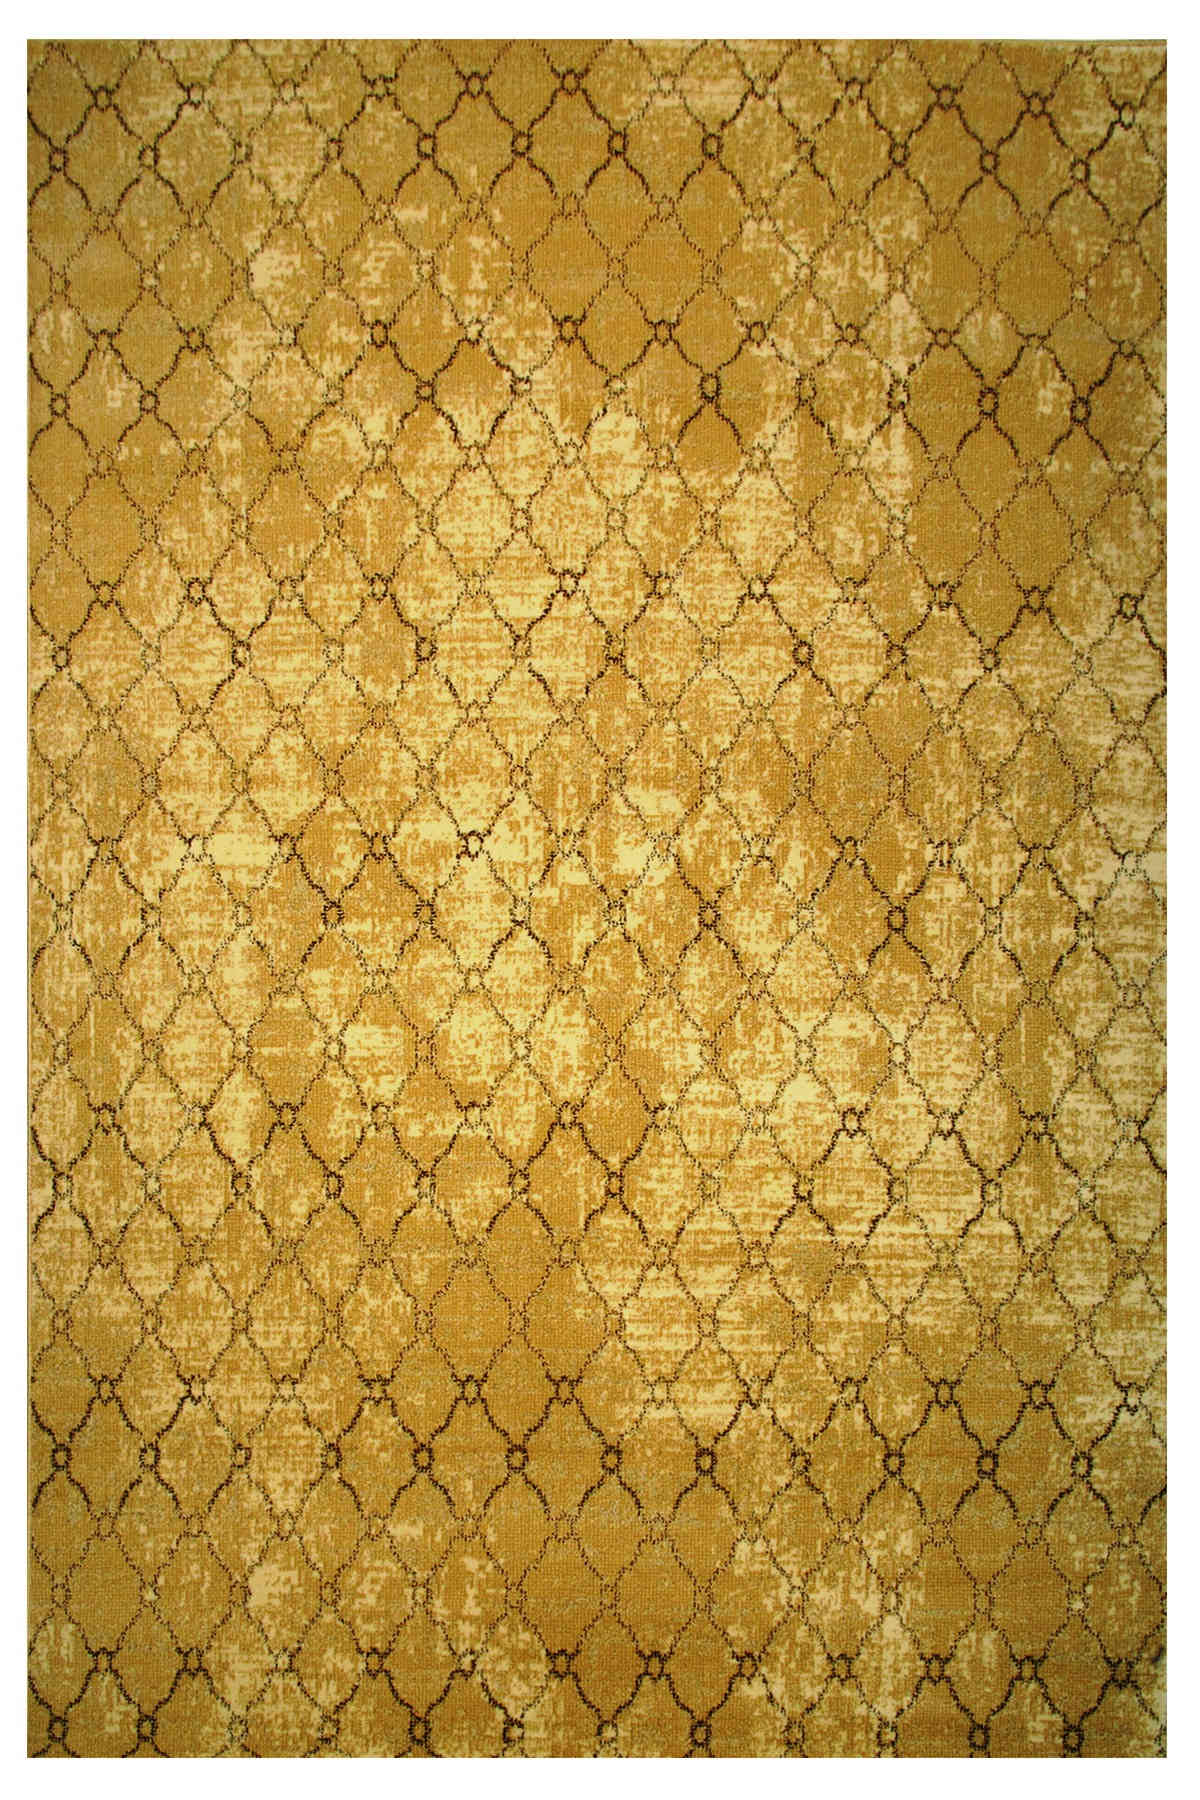 La Rug Leonardo 422-17 Multi-color